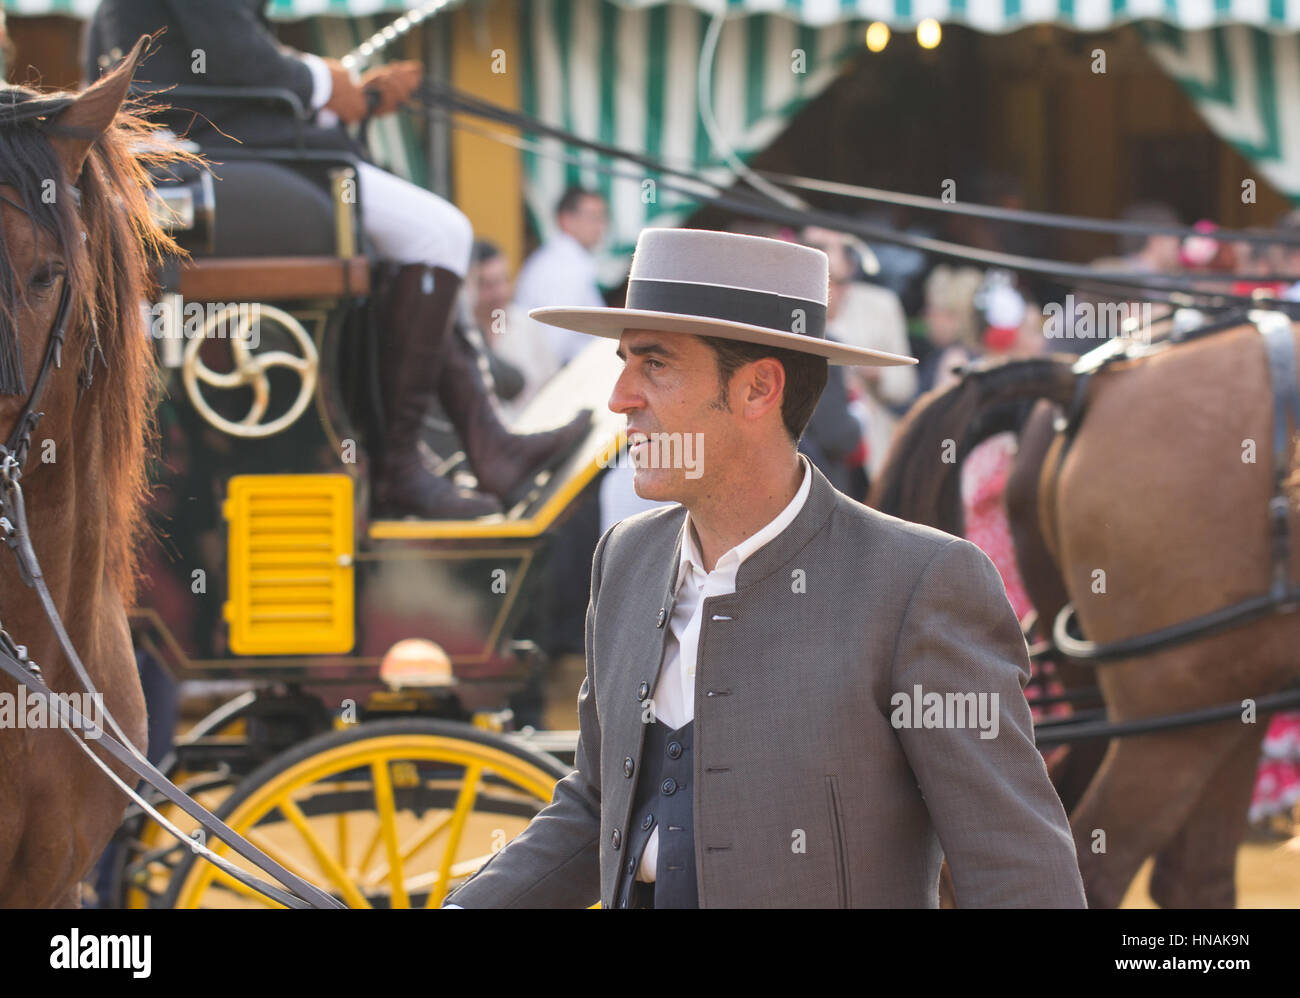 SEVILLE, SPAIN - APR, 25: man in traditional costume at the Seville's April Fair on April, 25, 2014 in Seville, - Stock Image